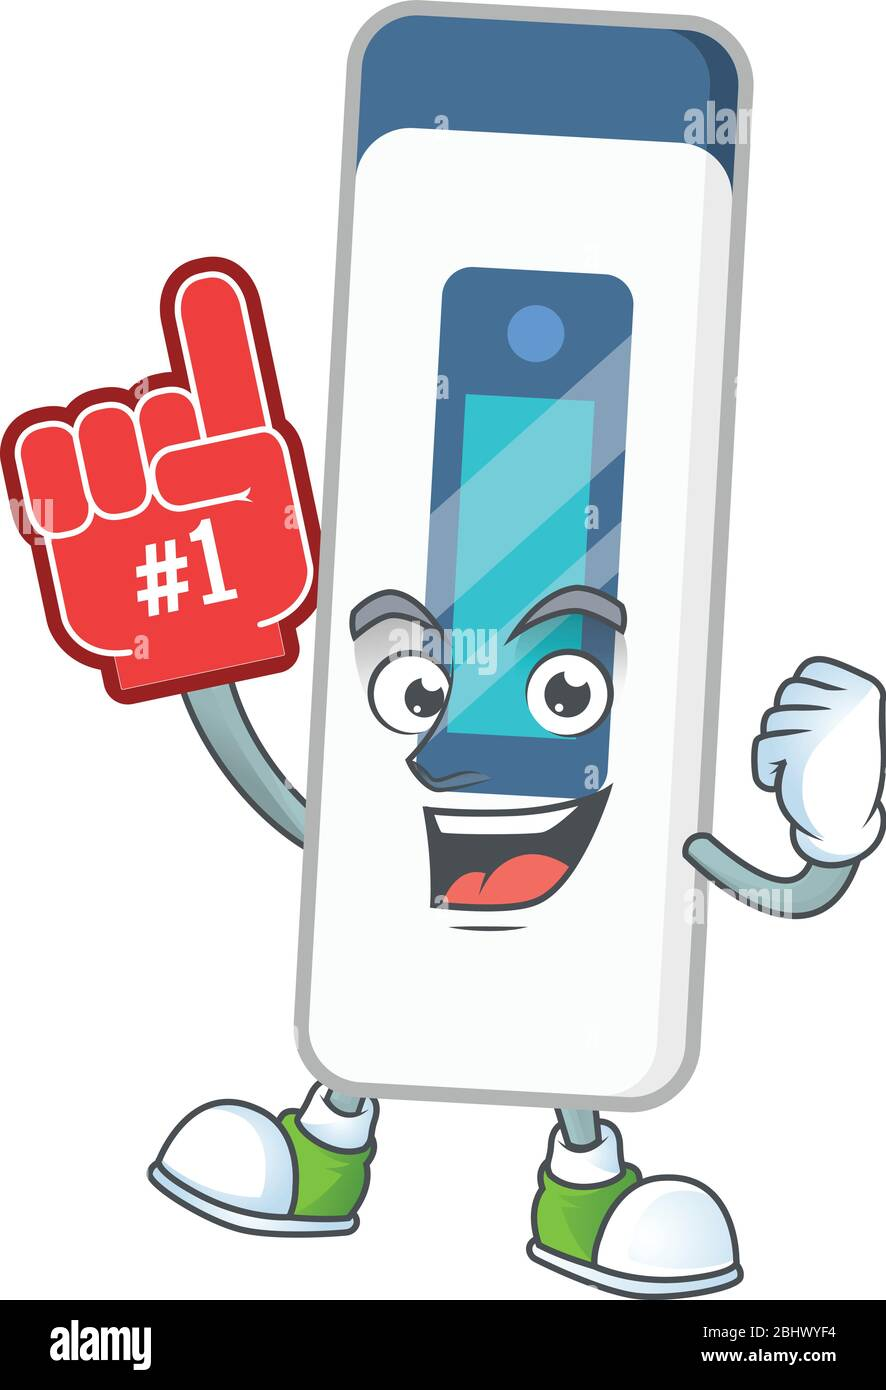 Cartoon character concept of digital thermometer holding red foam finger Stock Vector